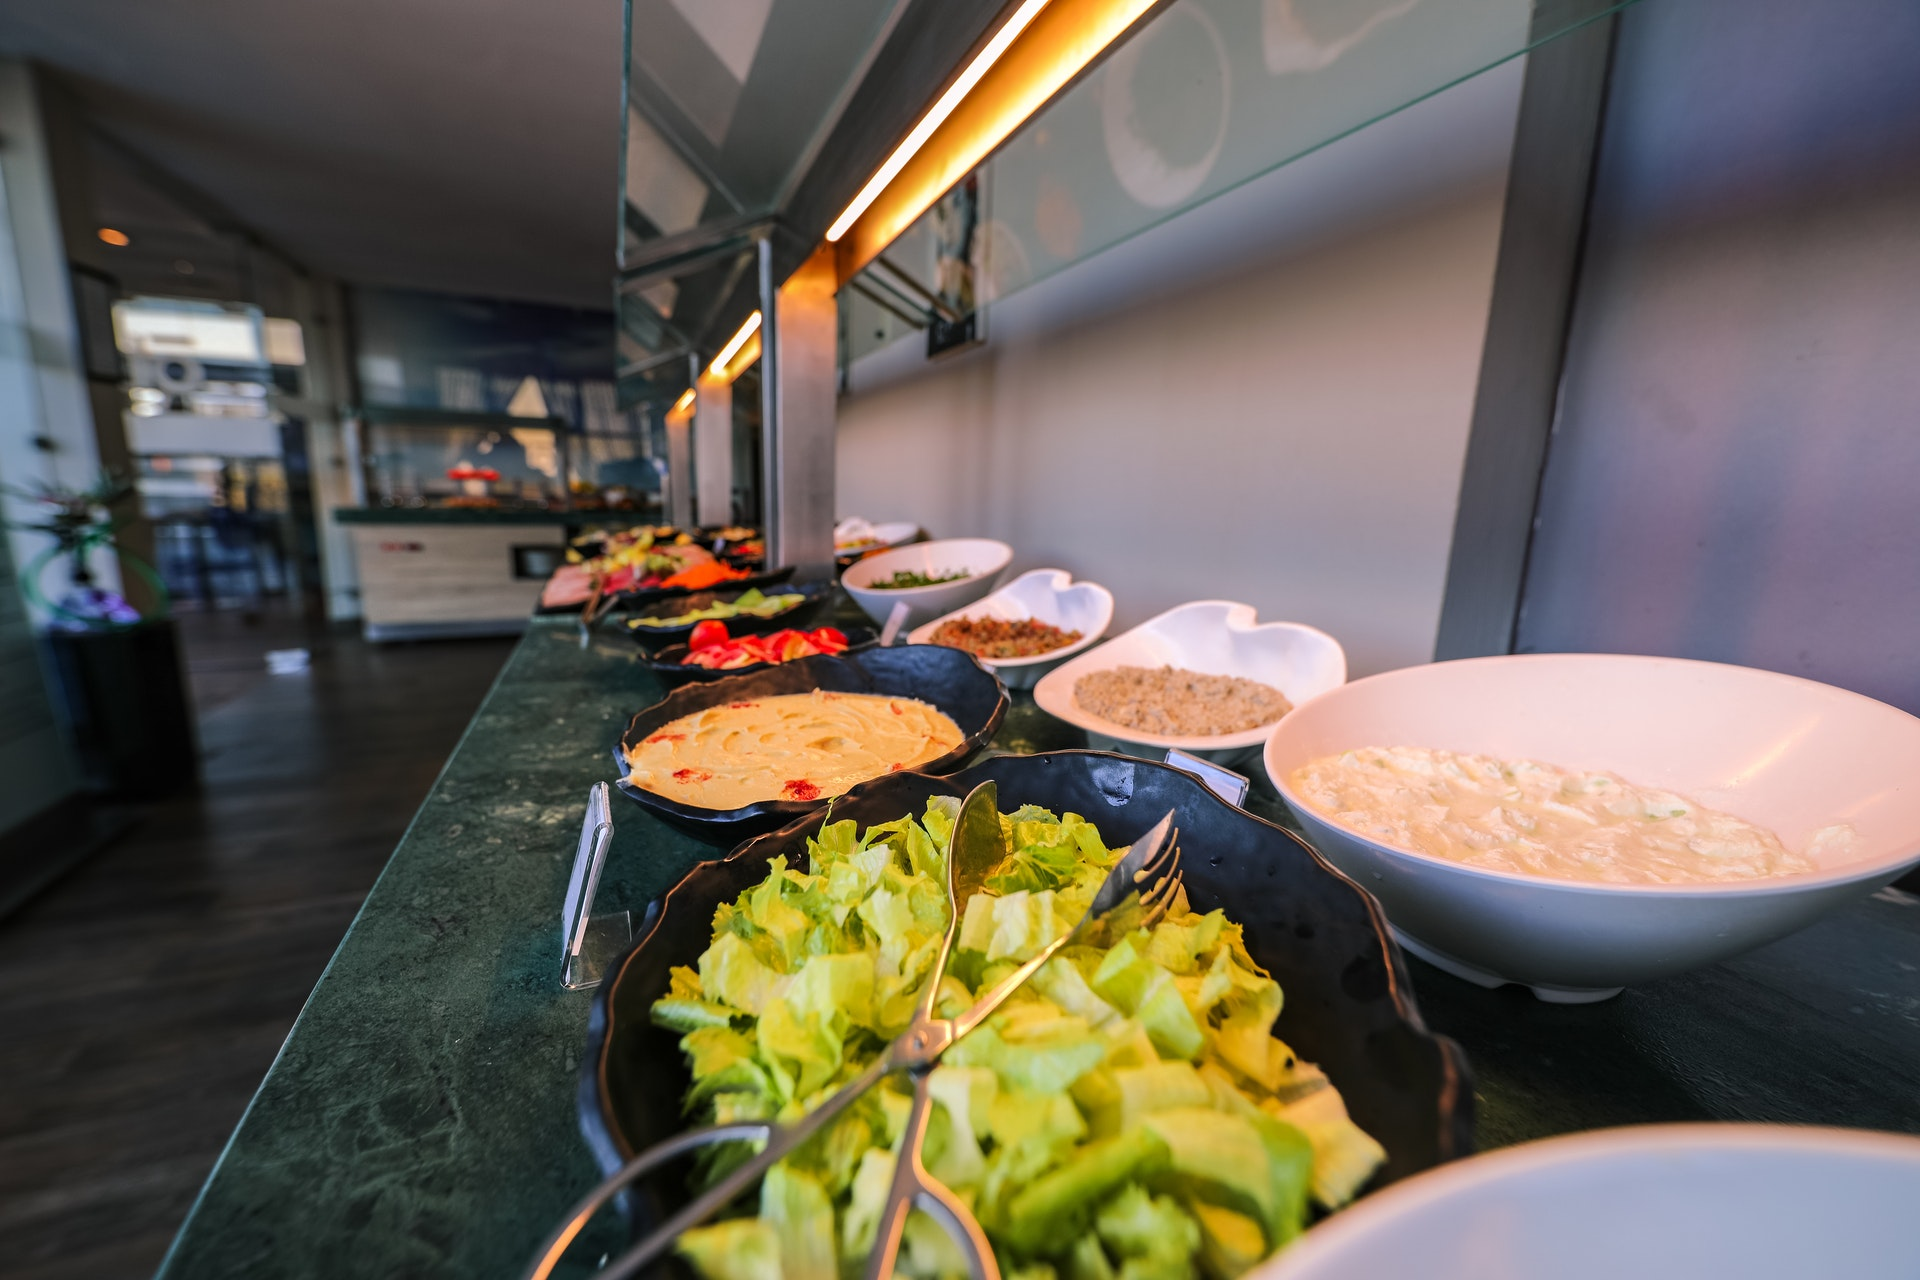 soical event catering, catering in kenosha, kenosha event catering